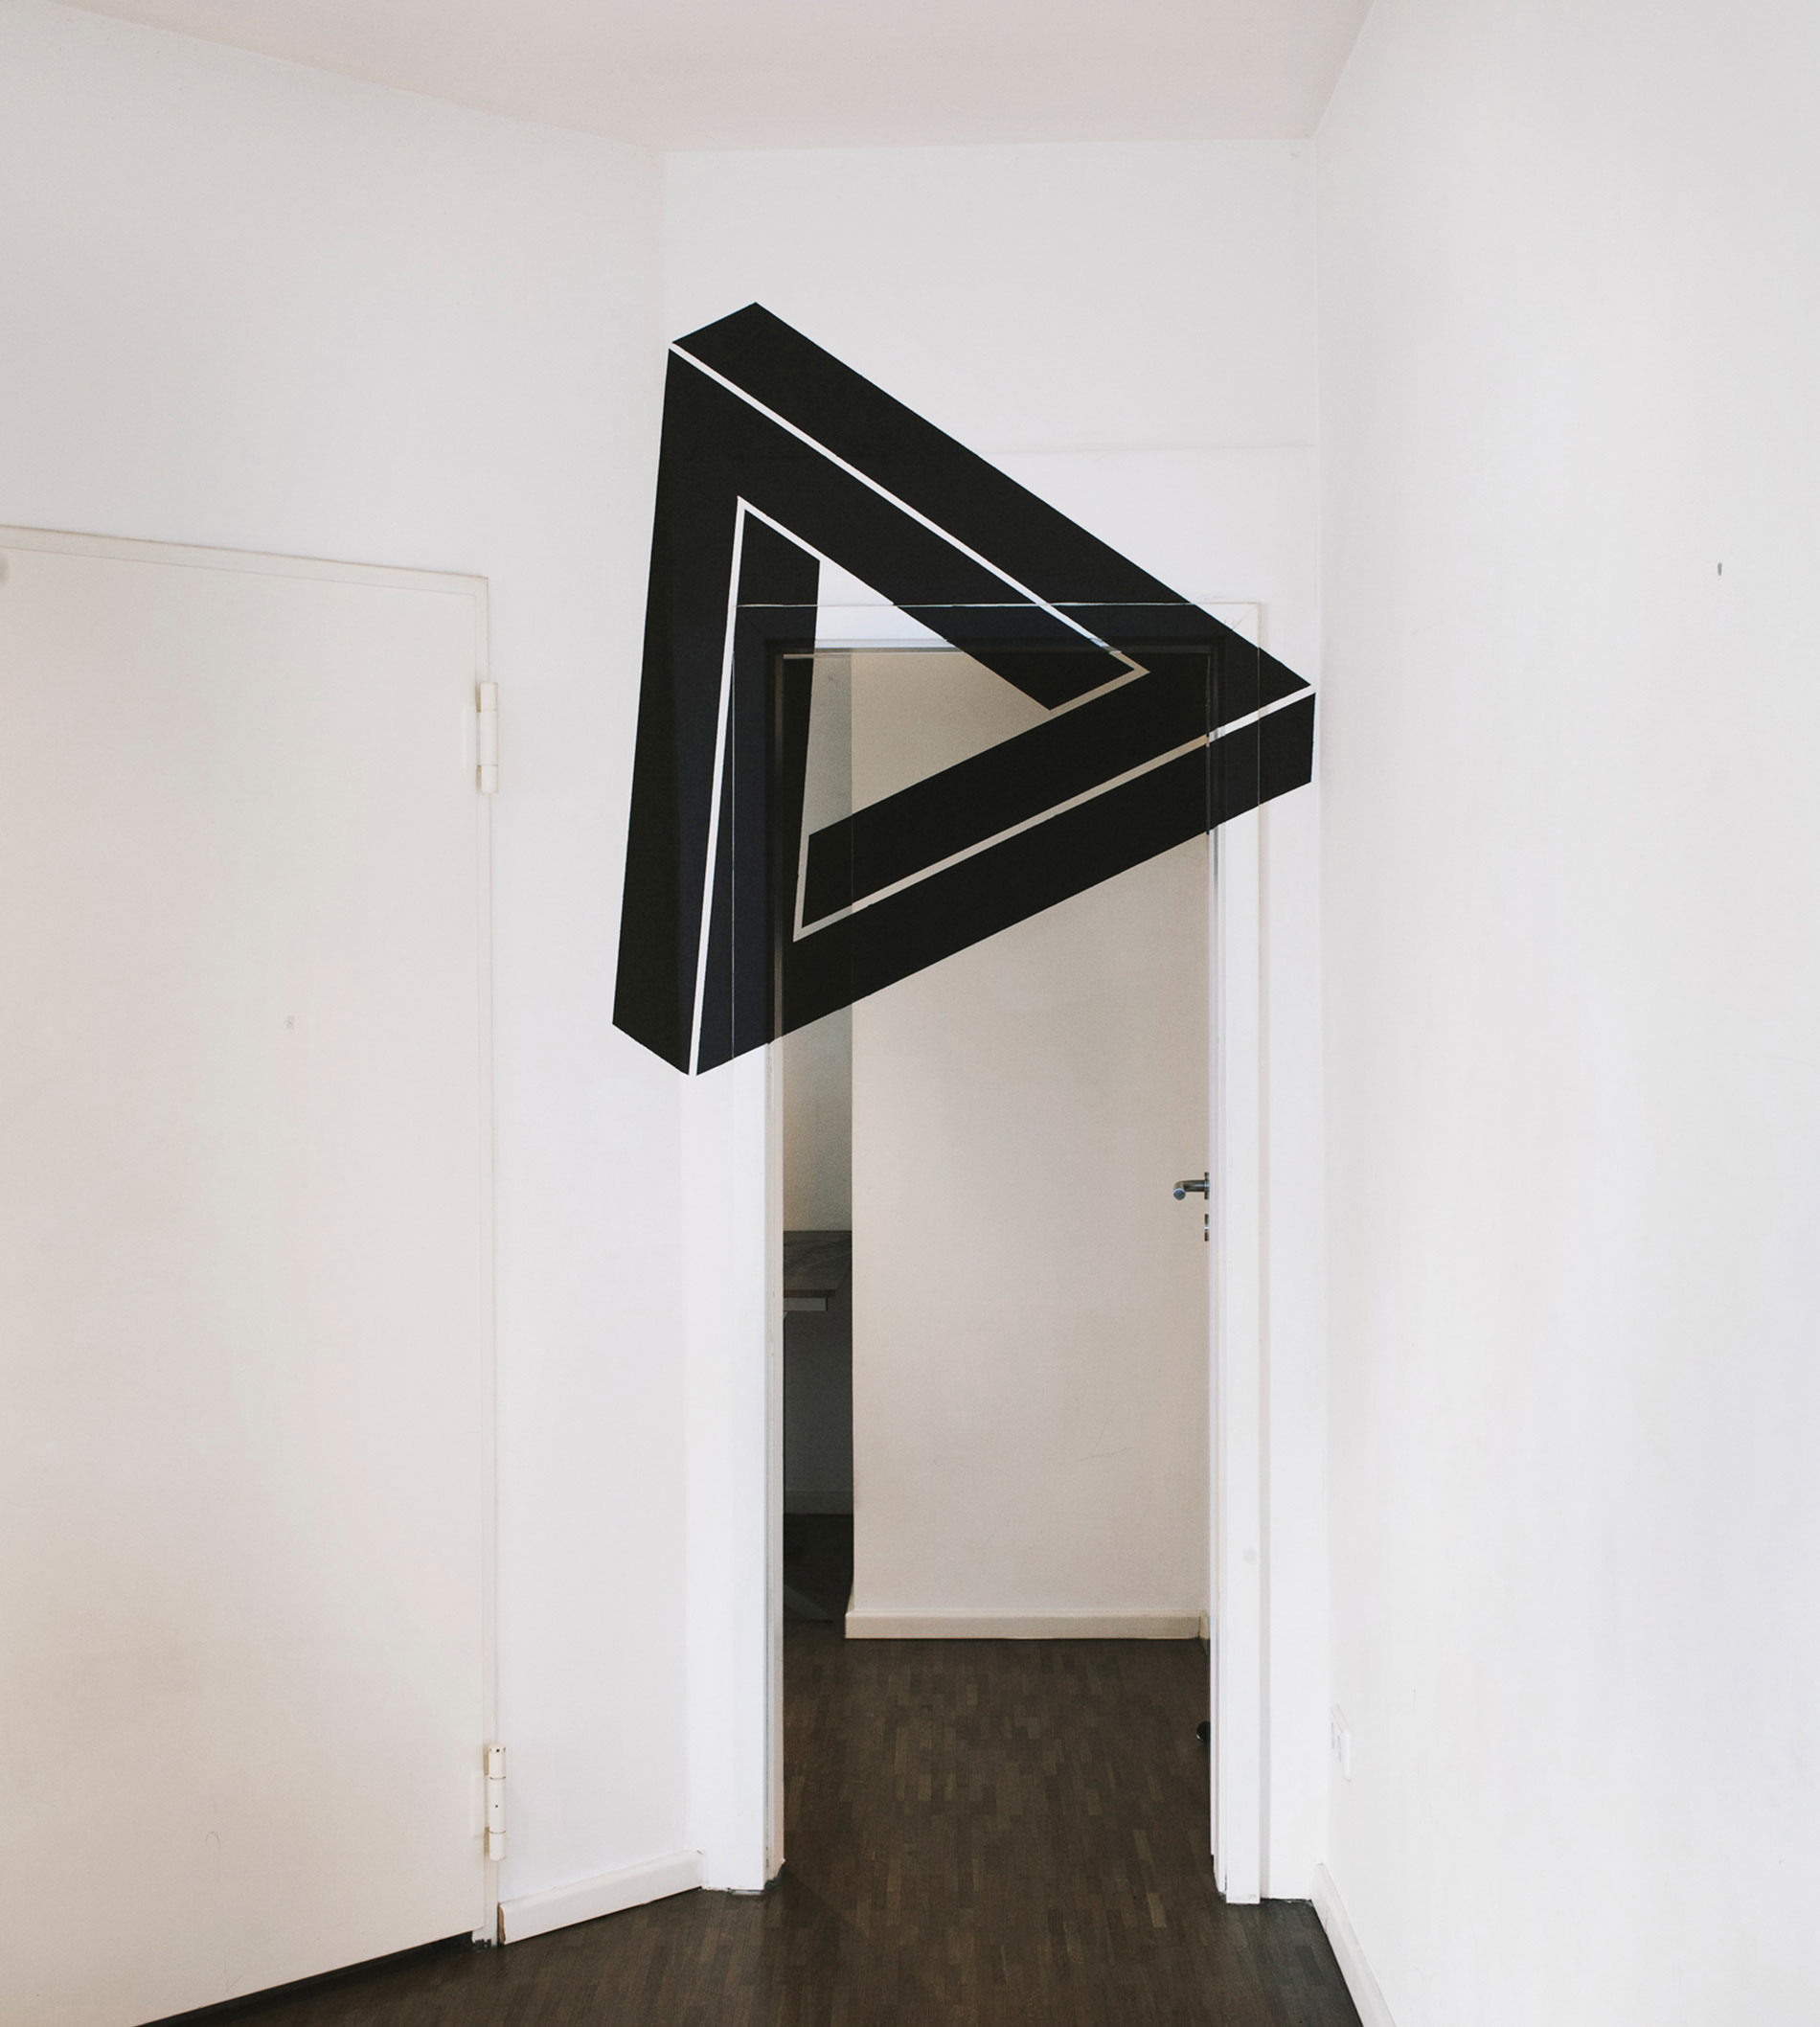 penrose triangle on white wall over door. Anamorphic art by fanette g.